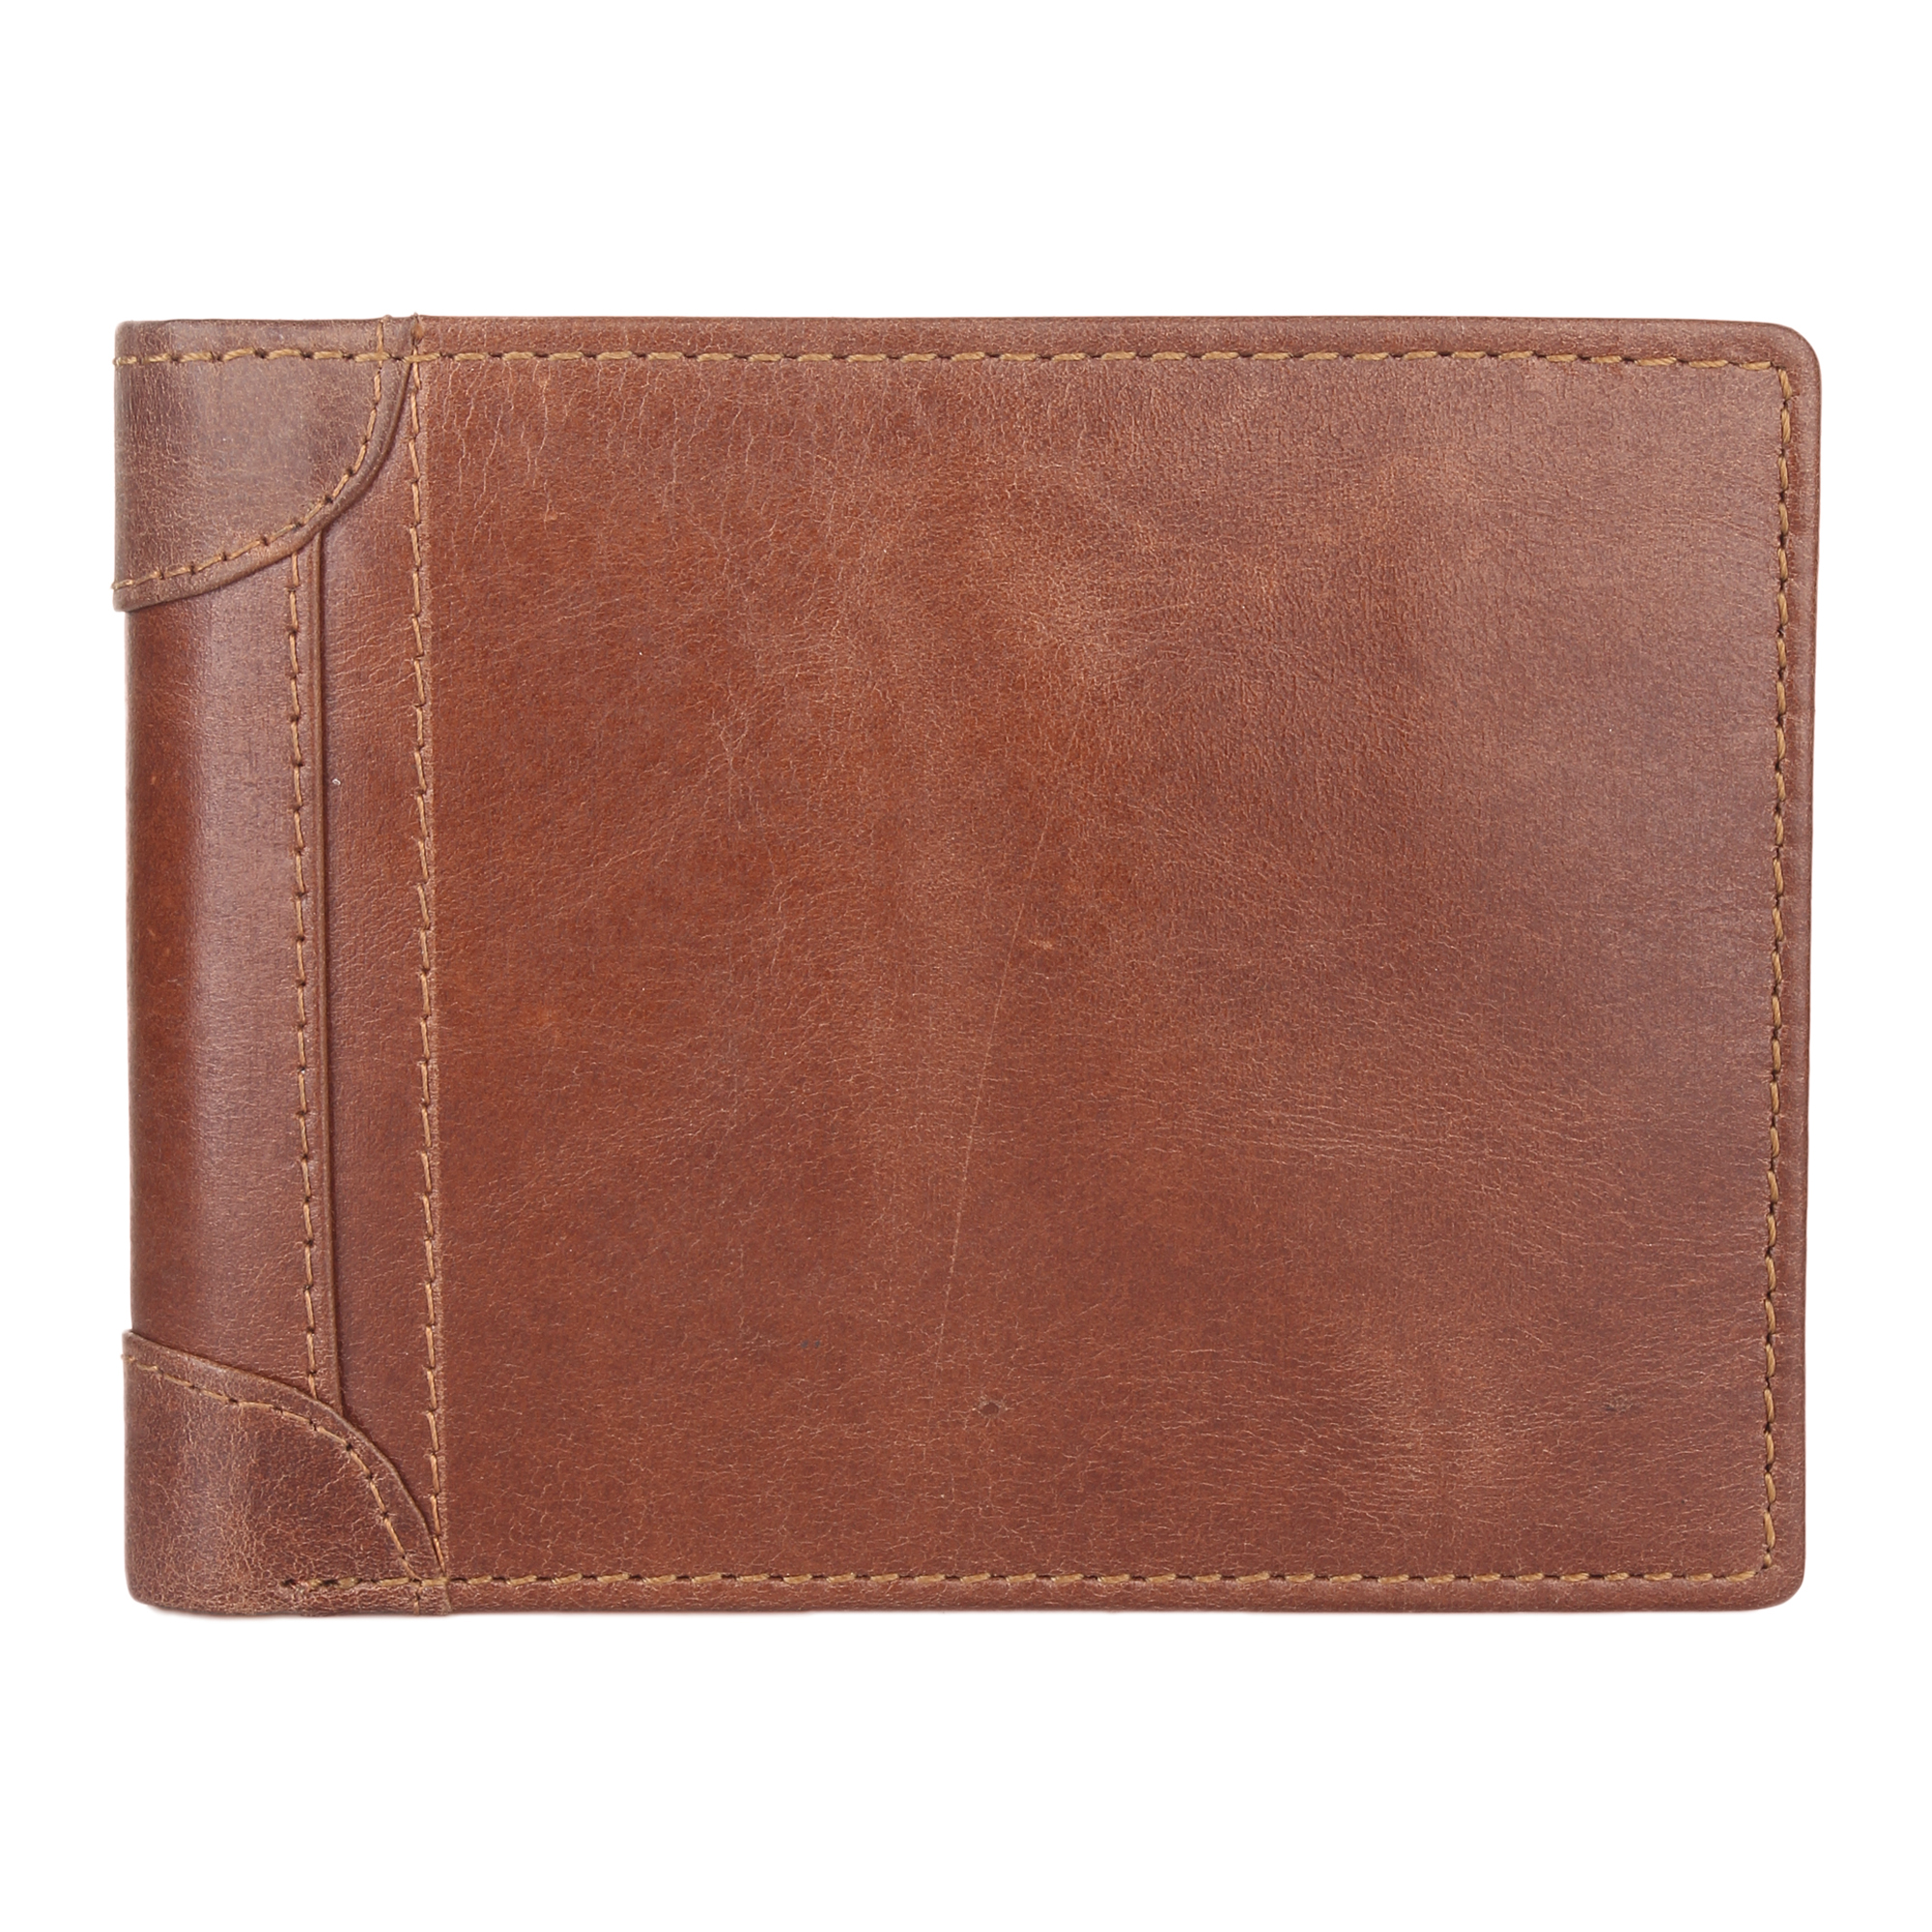 Leather Wallets Manufacturers in Alabama, Leather Wallets Suppliers in Alabama, Leather Wallets Wholesalers in Alabama, Leather Wallets Traders in Alabama, custom leather wallet manufacturers in Alabama, Leathe